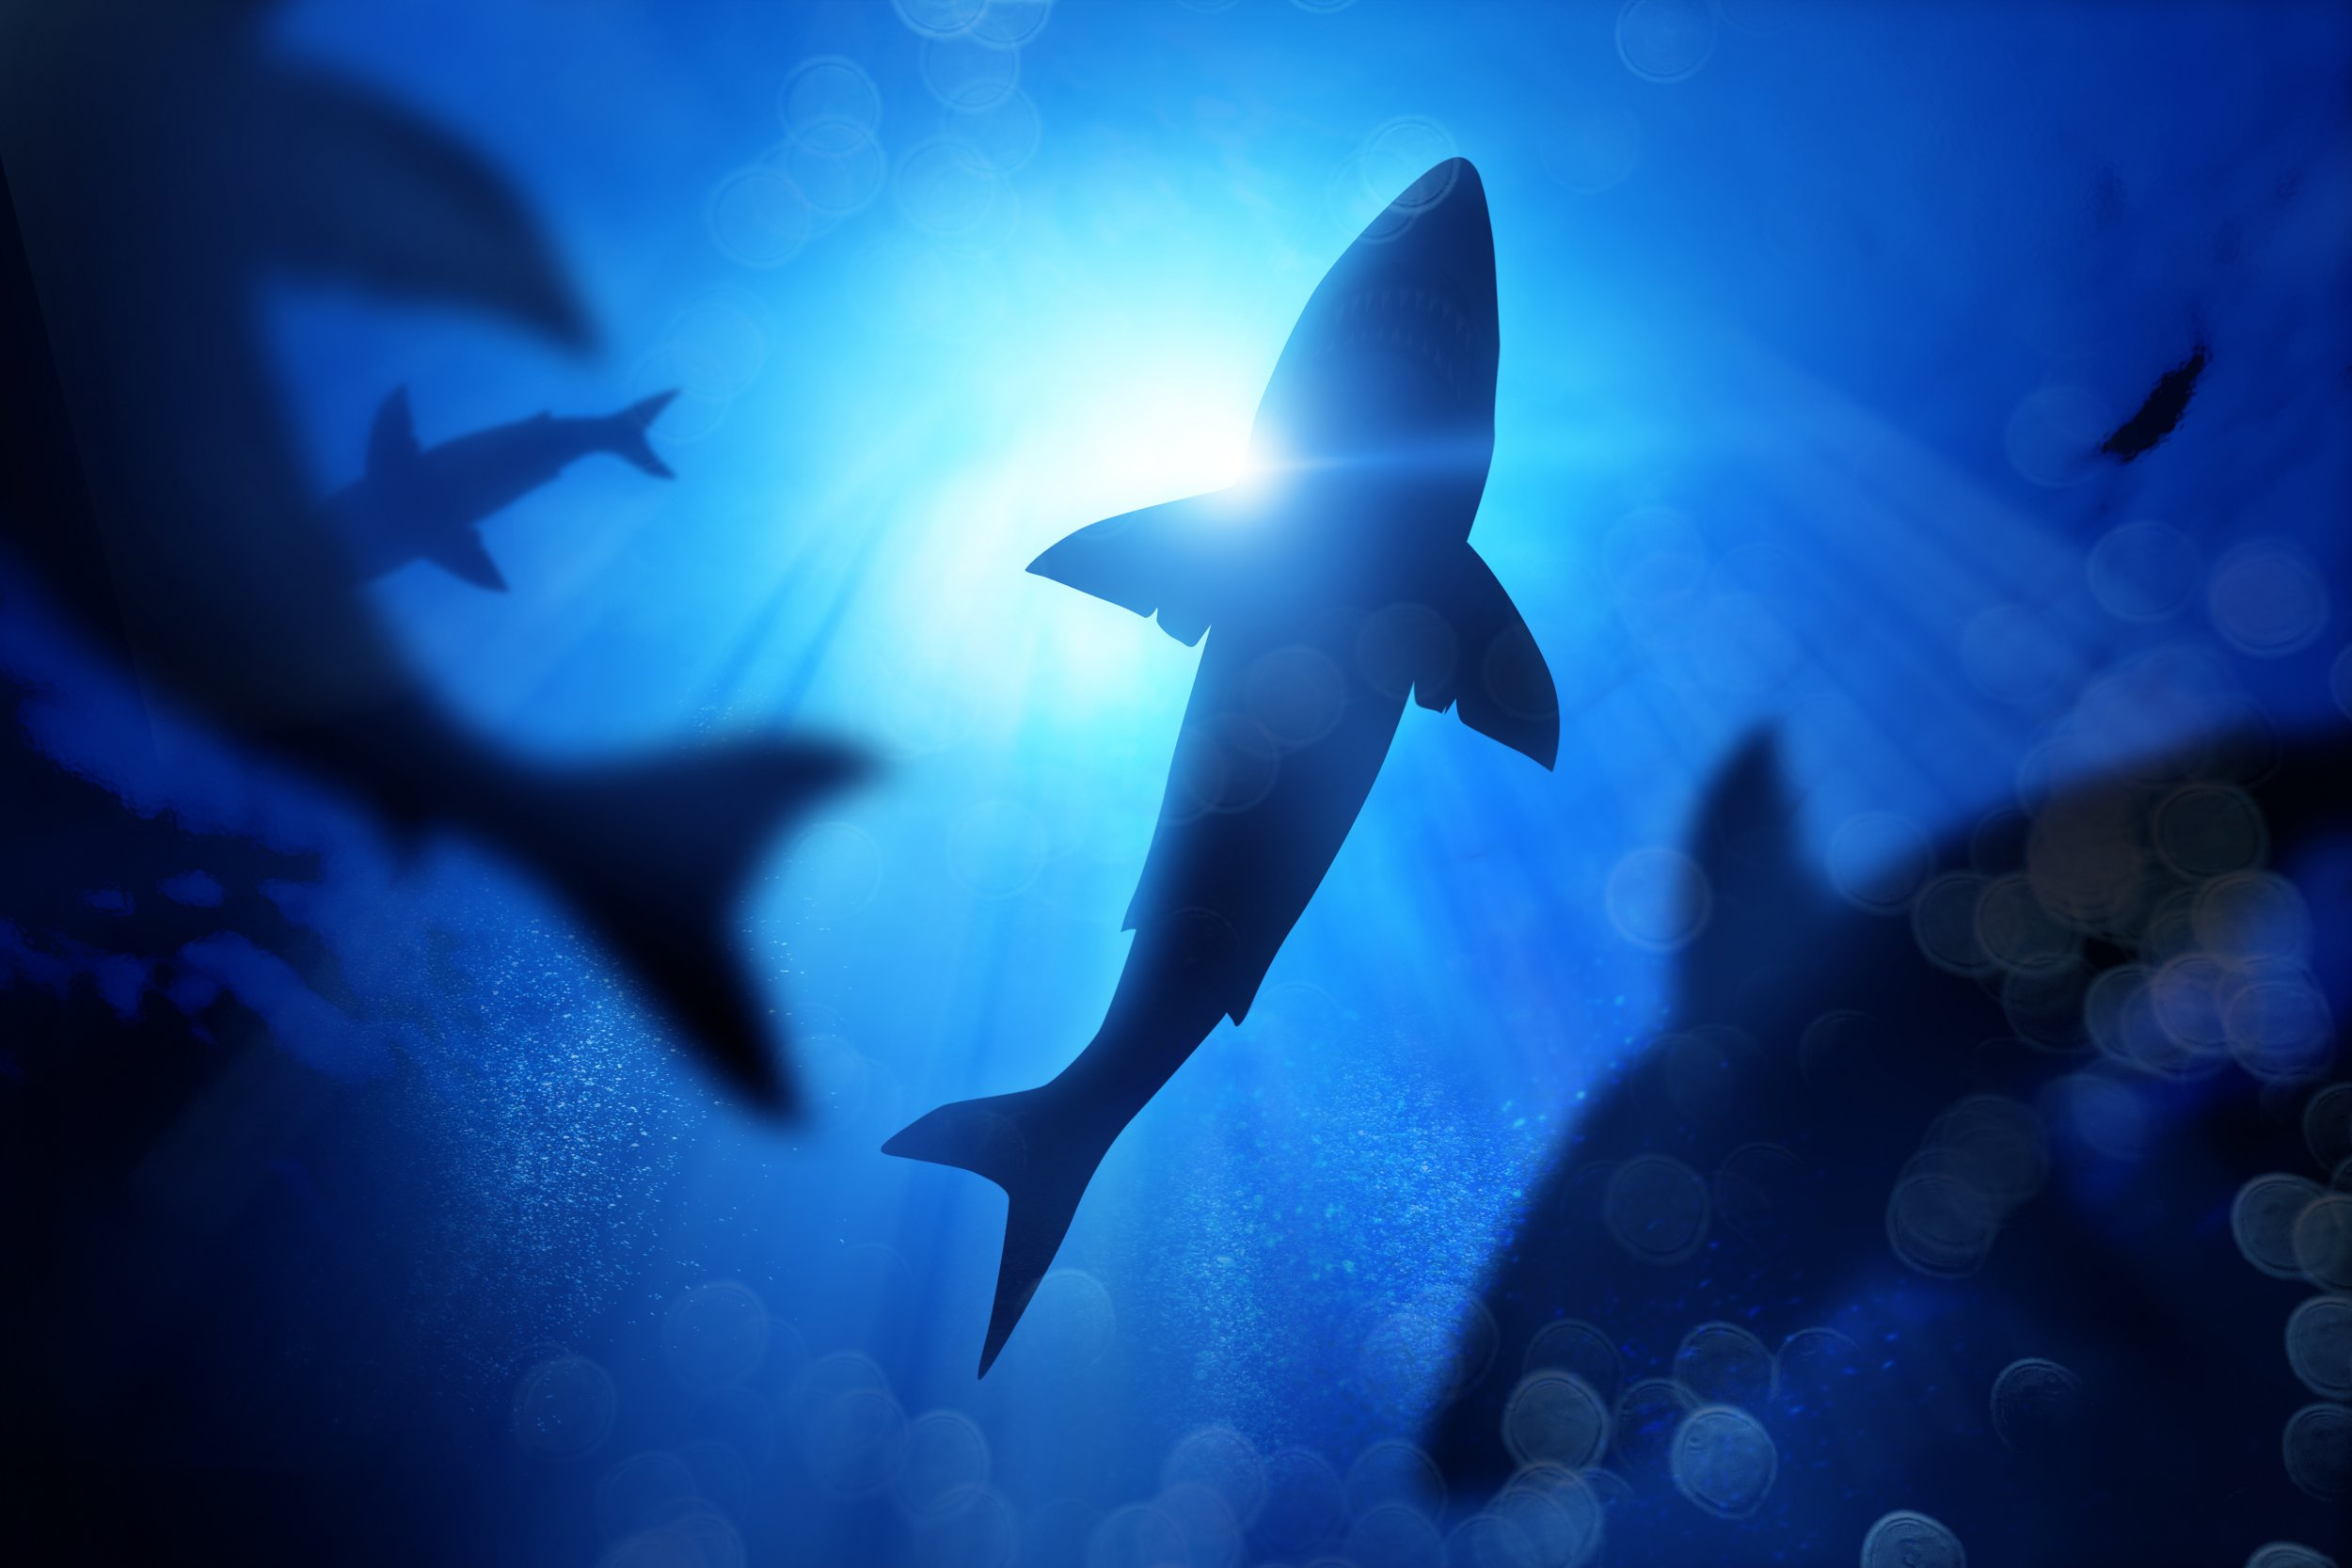 School Of Sharks Under The Waves